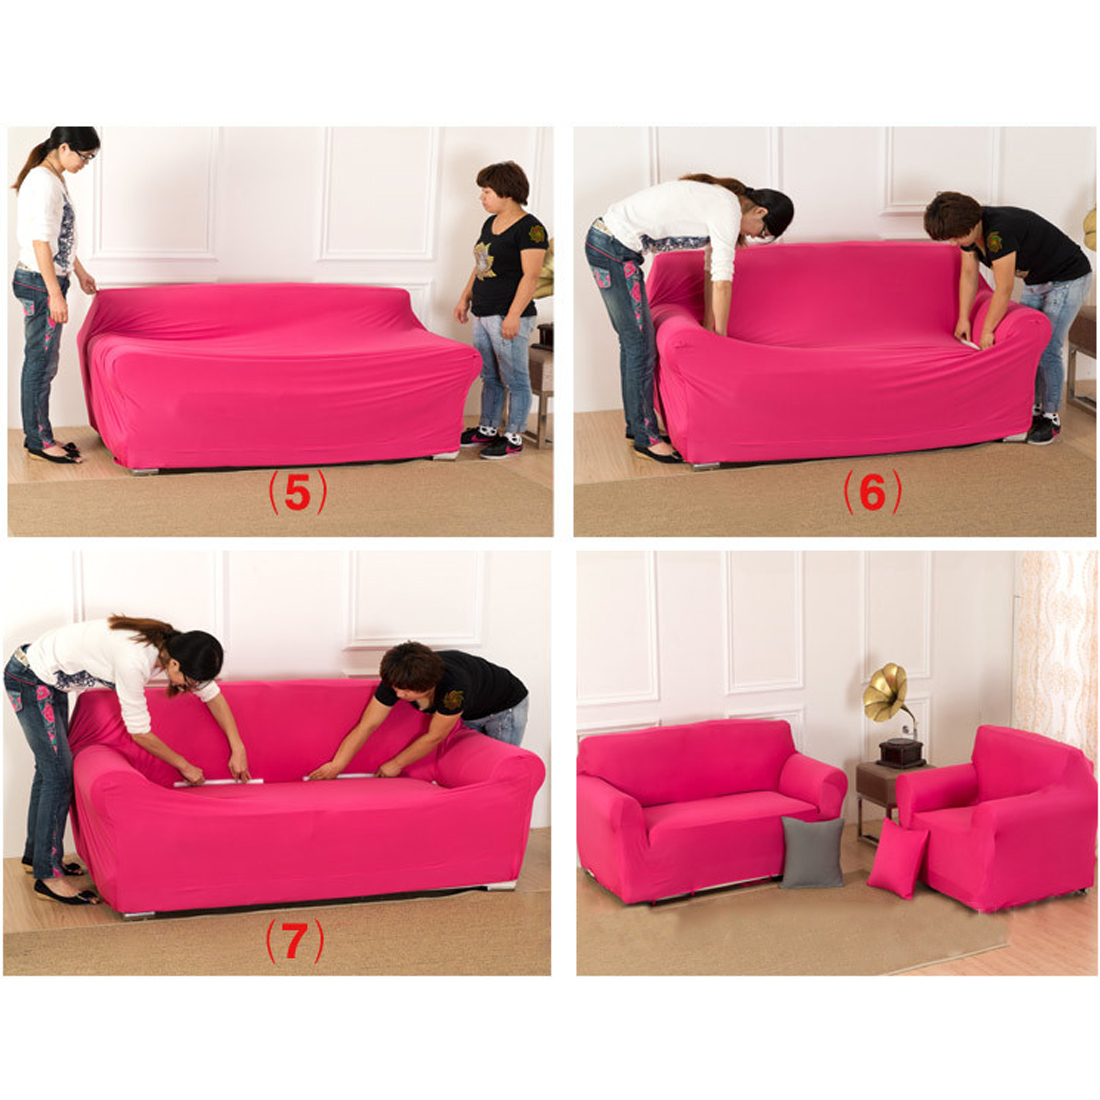 Sofa Stretch Covers: L Shaped Stretch Sofa Cover For 1 2 3 Seater Couch